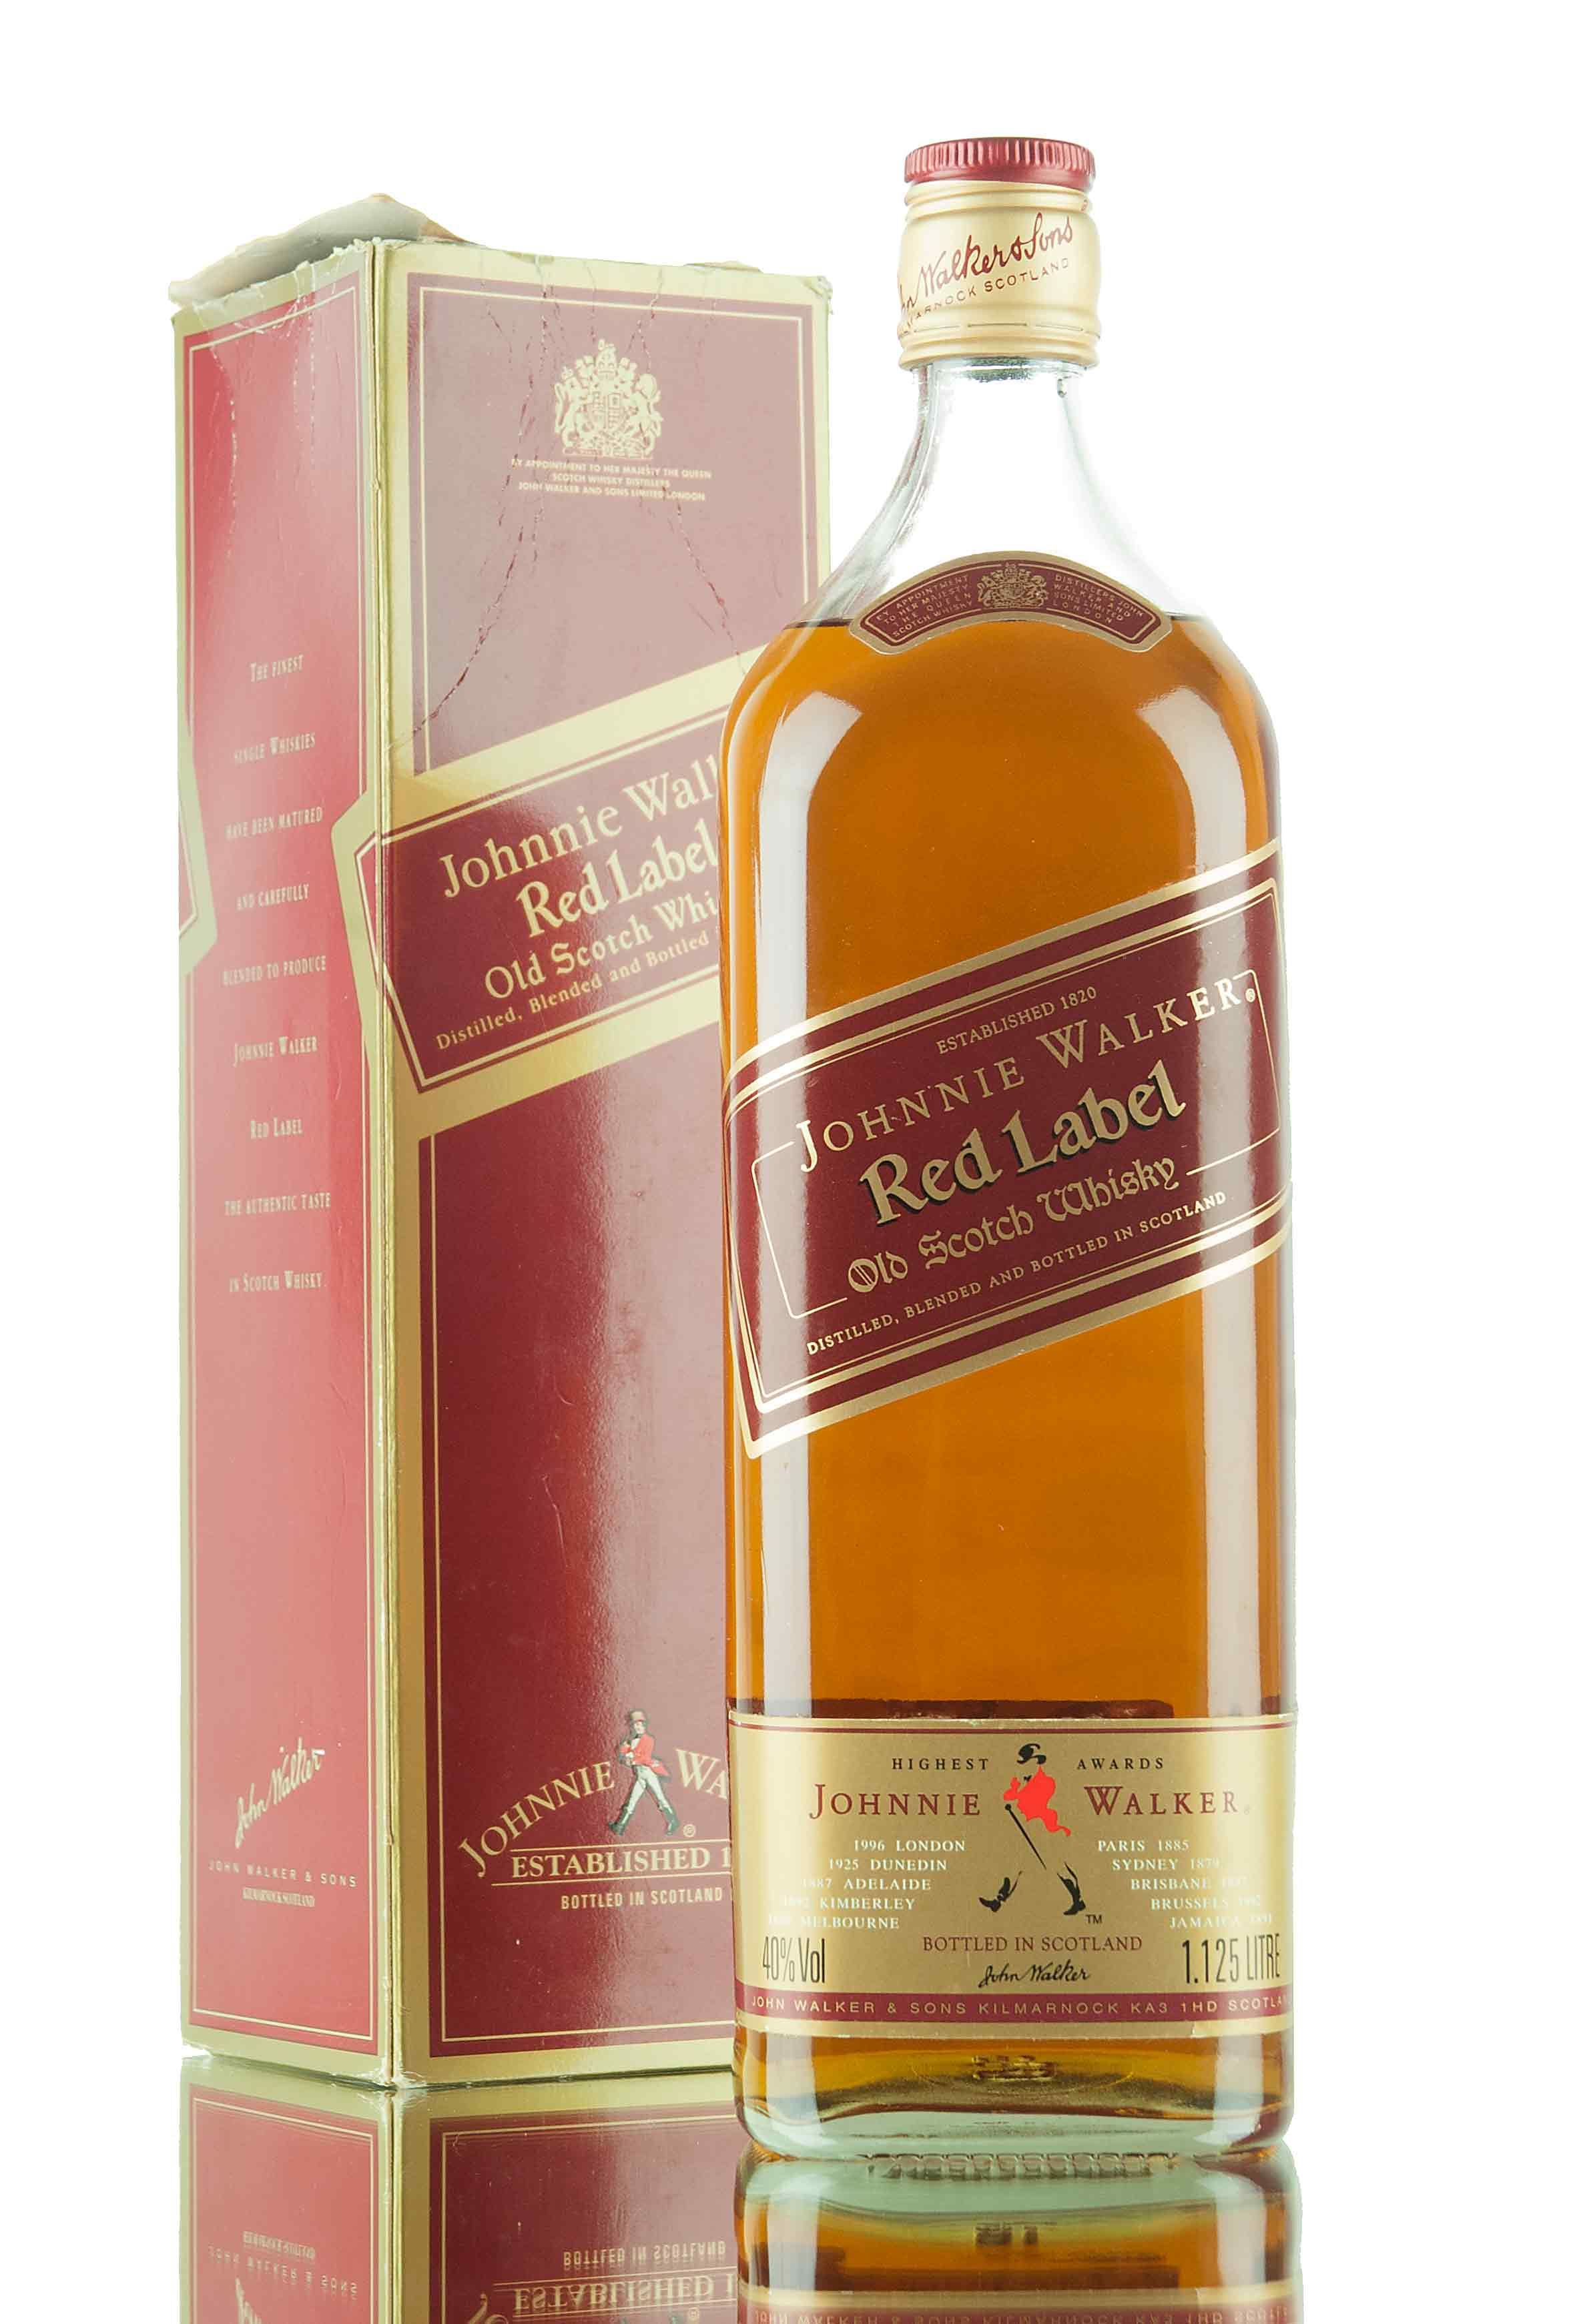 An older style release of Johnnie Walker Red Label, served up in a 1.125 litre size bottle. We believe this to be have bottled sometime in the 1980's, filled at 40%. Please check the condition of this bottling before ordering. If you require further images, please get in touch.